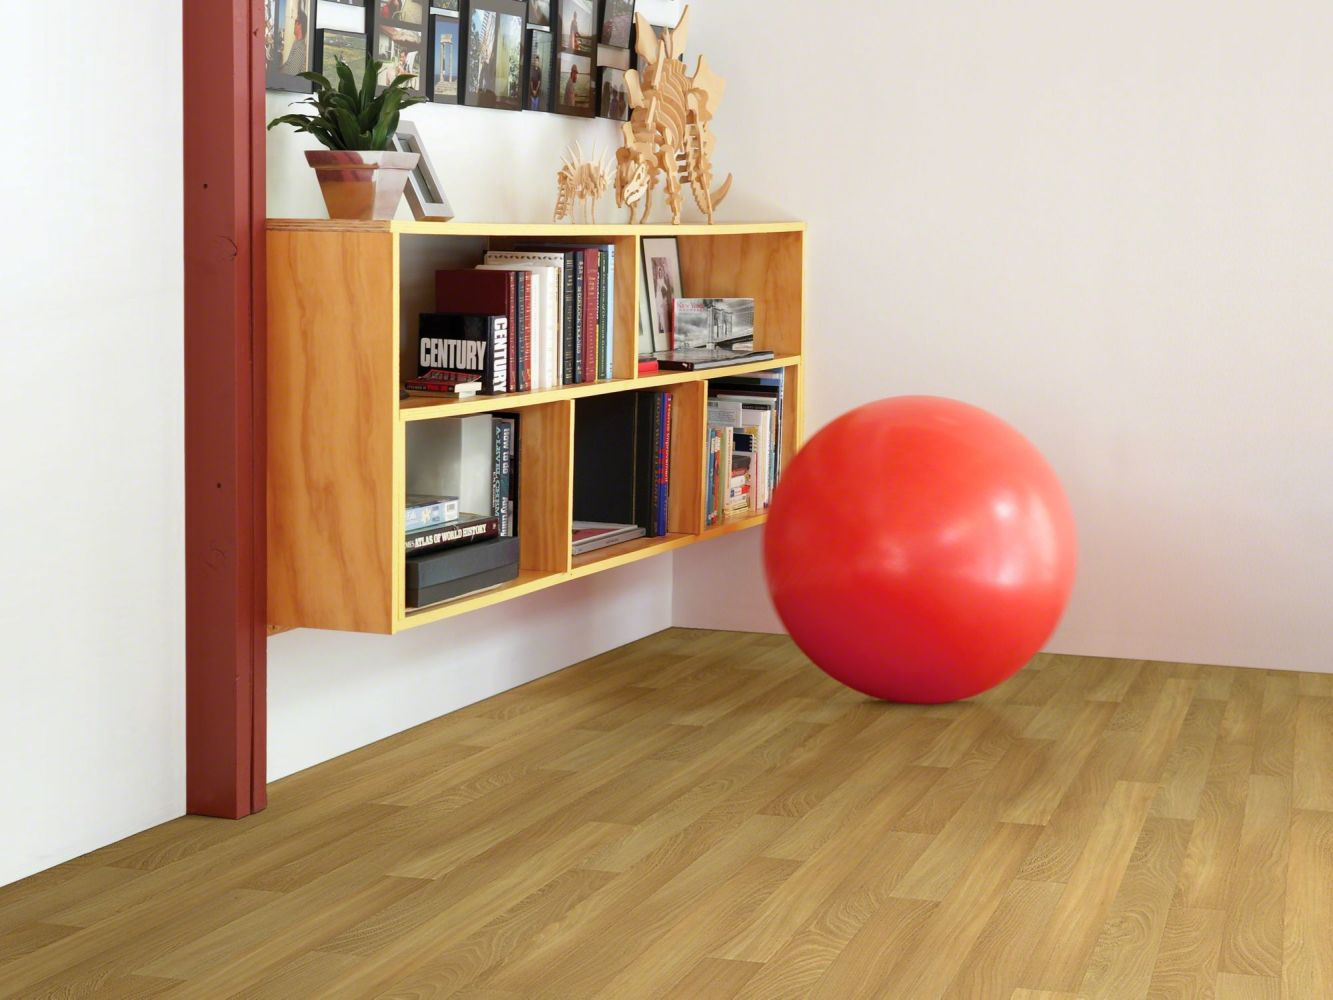 Shaw Floors Vinyl Residential City Park Discoesque 00288_SA627